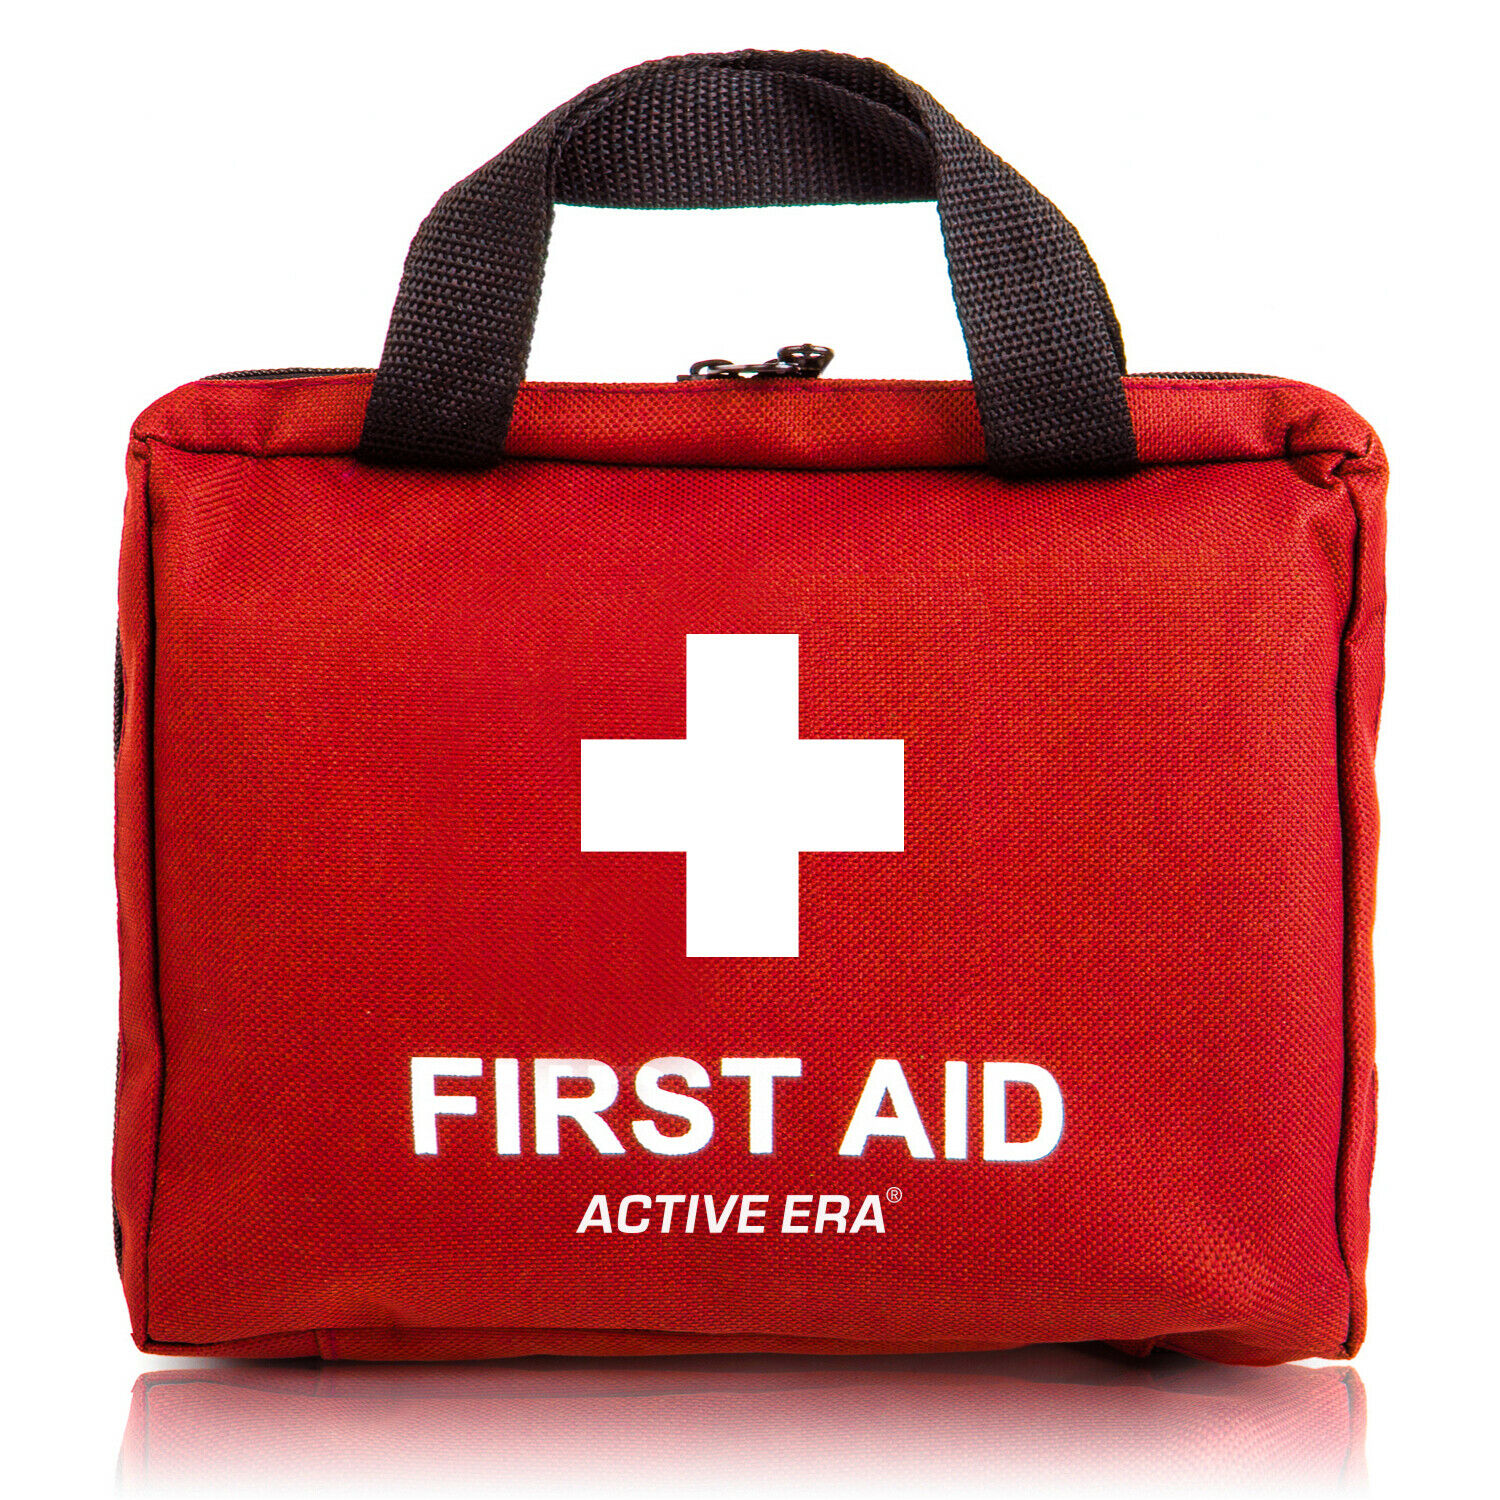 90 Pieces First Aid Kit – All-Purpose Premium Medical Supplies and Emergency Bag